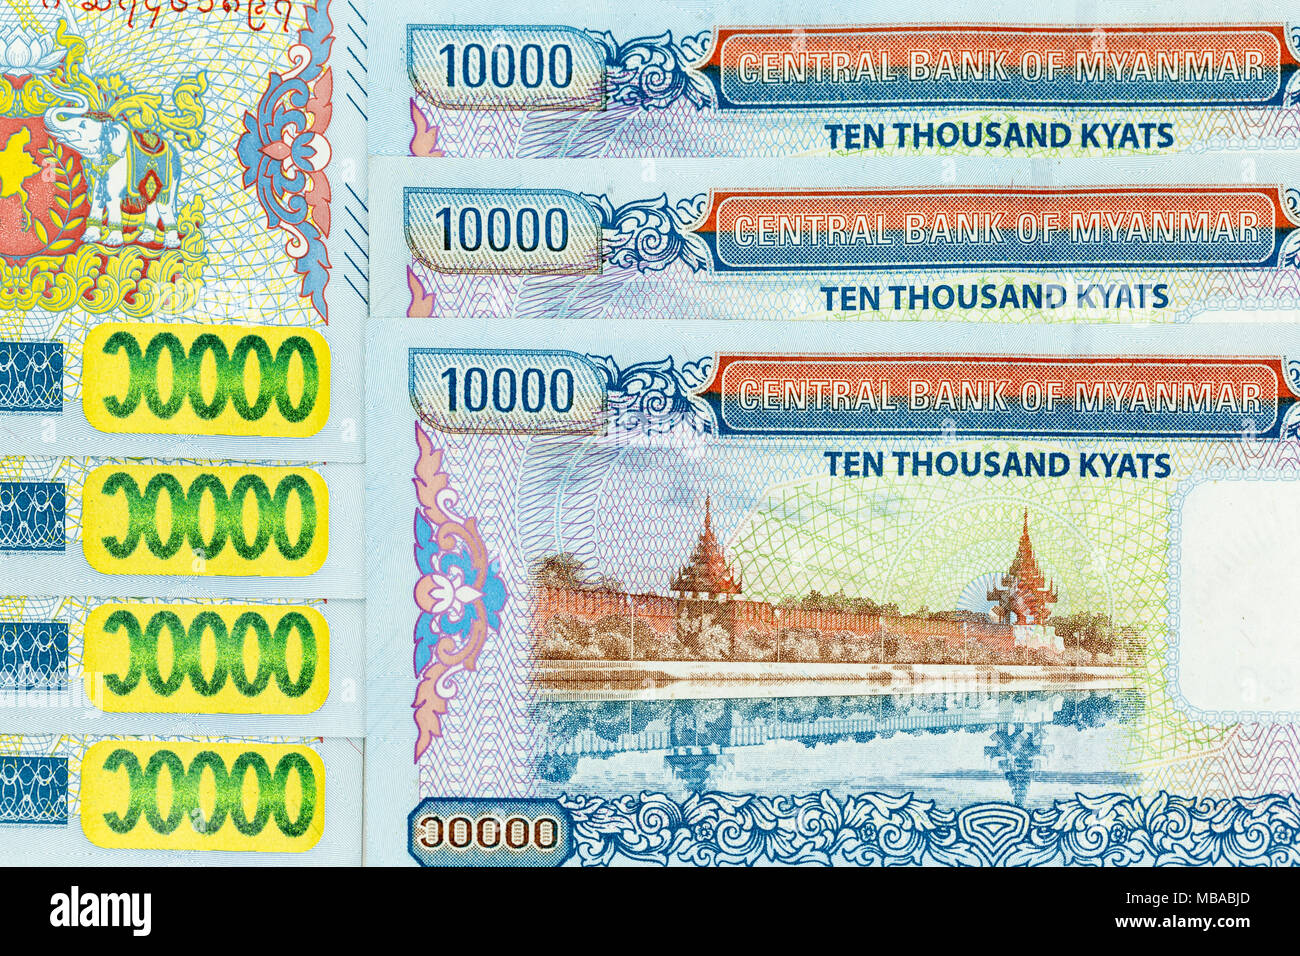 Myanmar Money Currency High Resolution Stock Photography and Images - Alamy